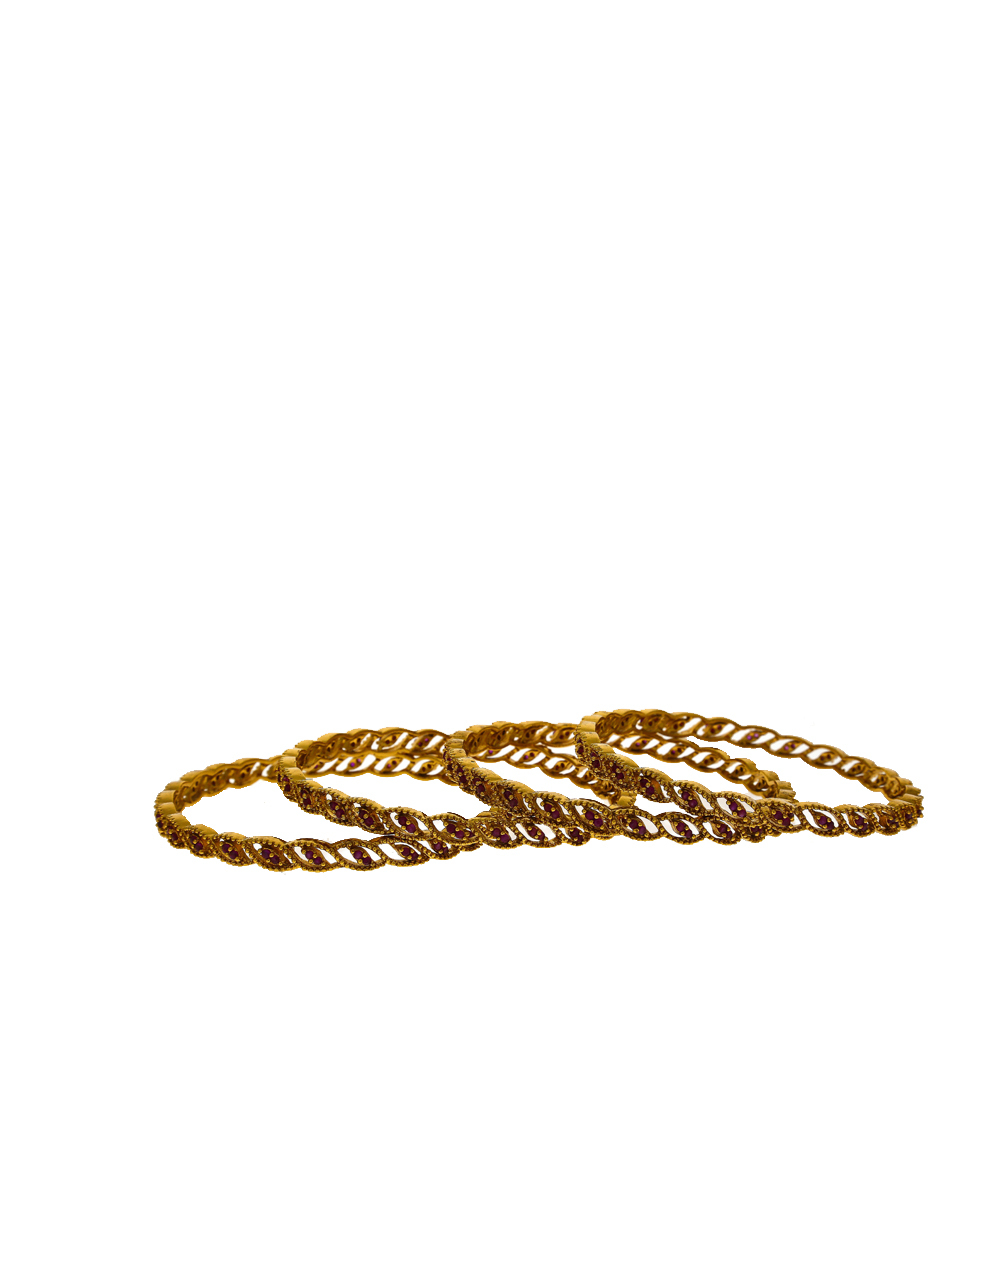 Stunning Golden Finish Embedded With Rani Colour Stone Traditional Bangles.